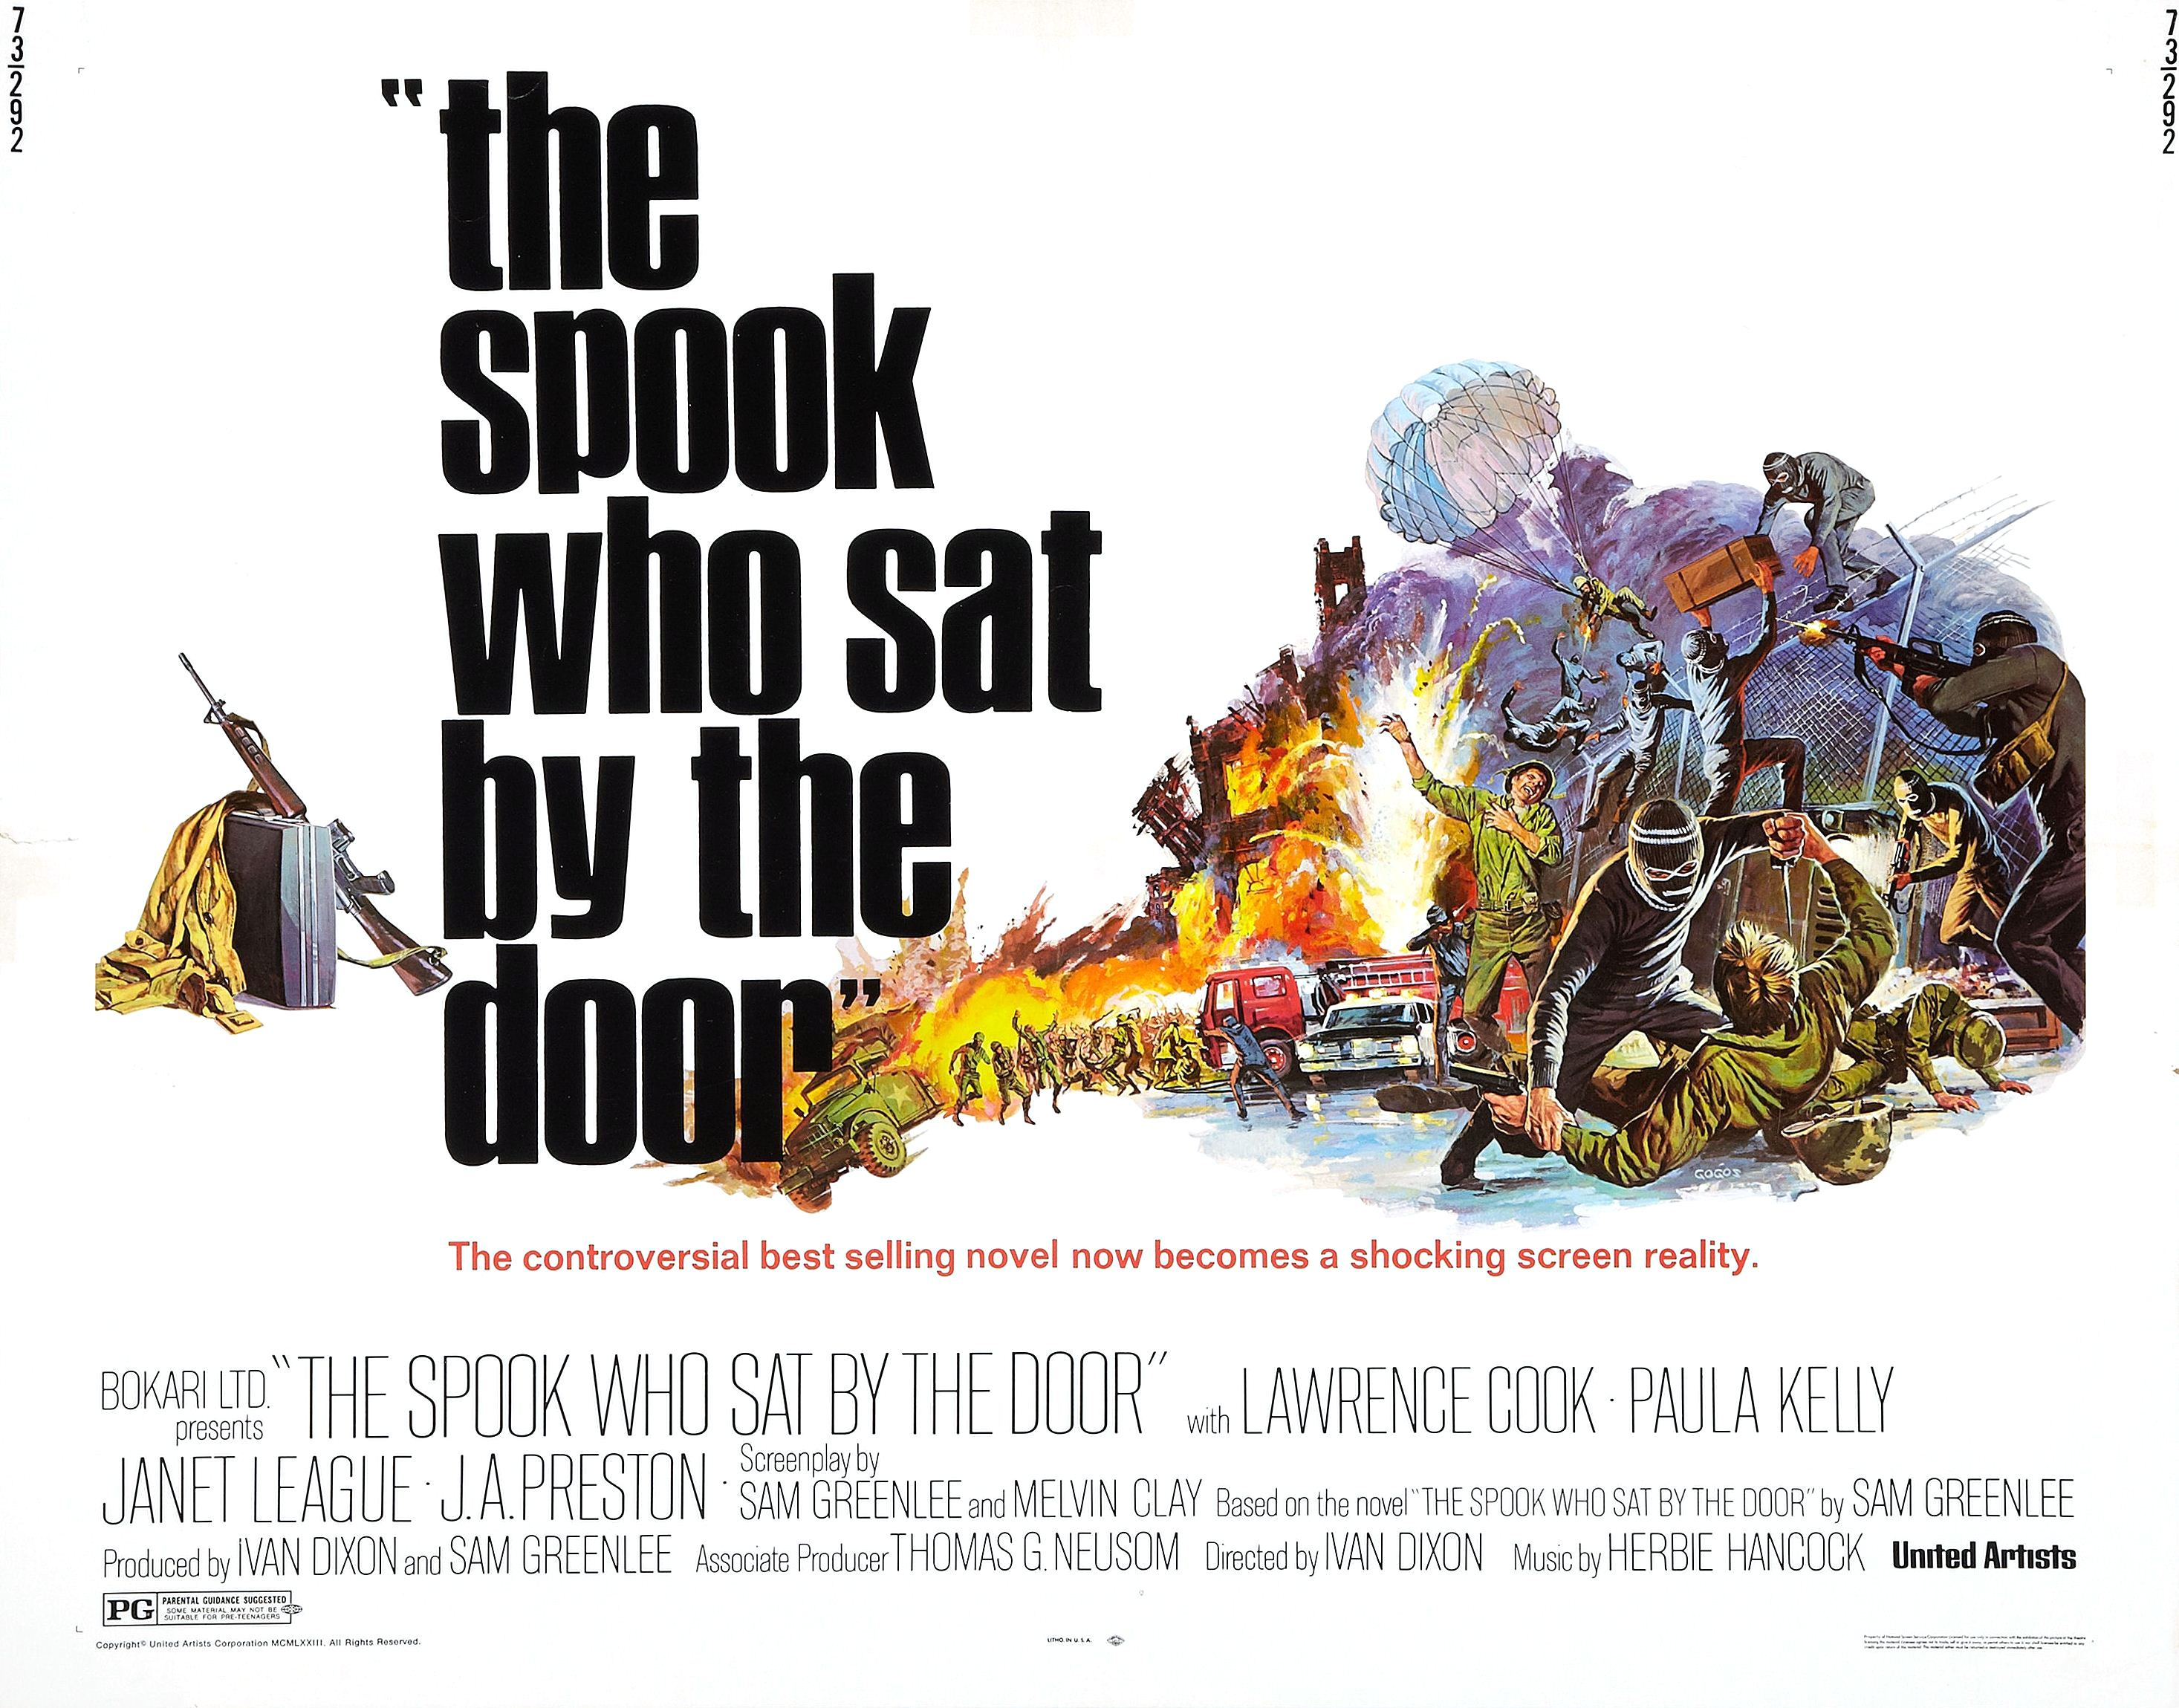 'The spook who sat by the door', 1973: Film About the First Black Man in the C.I.A